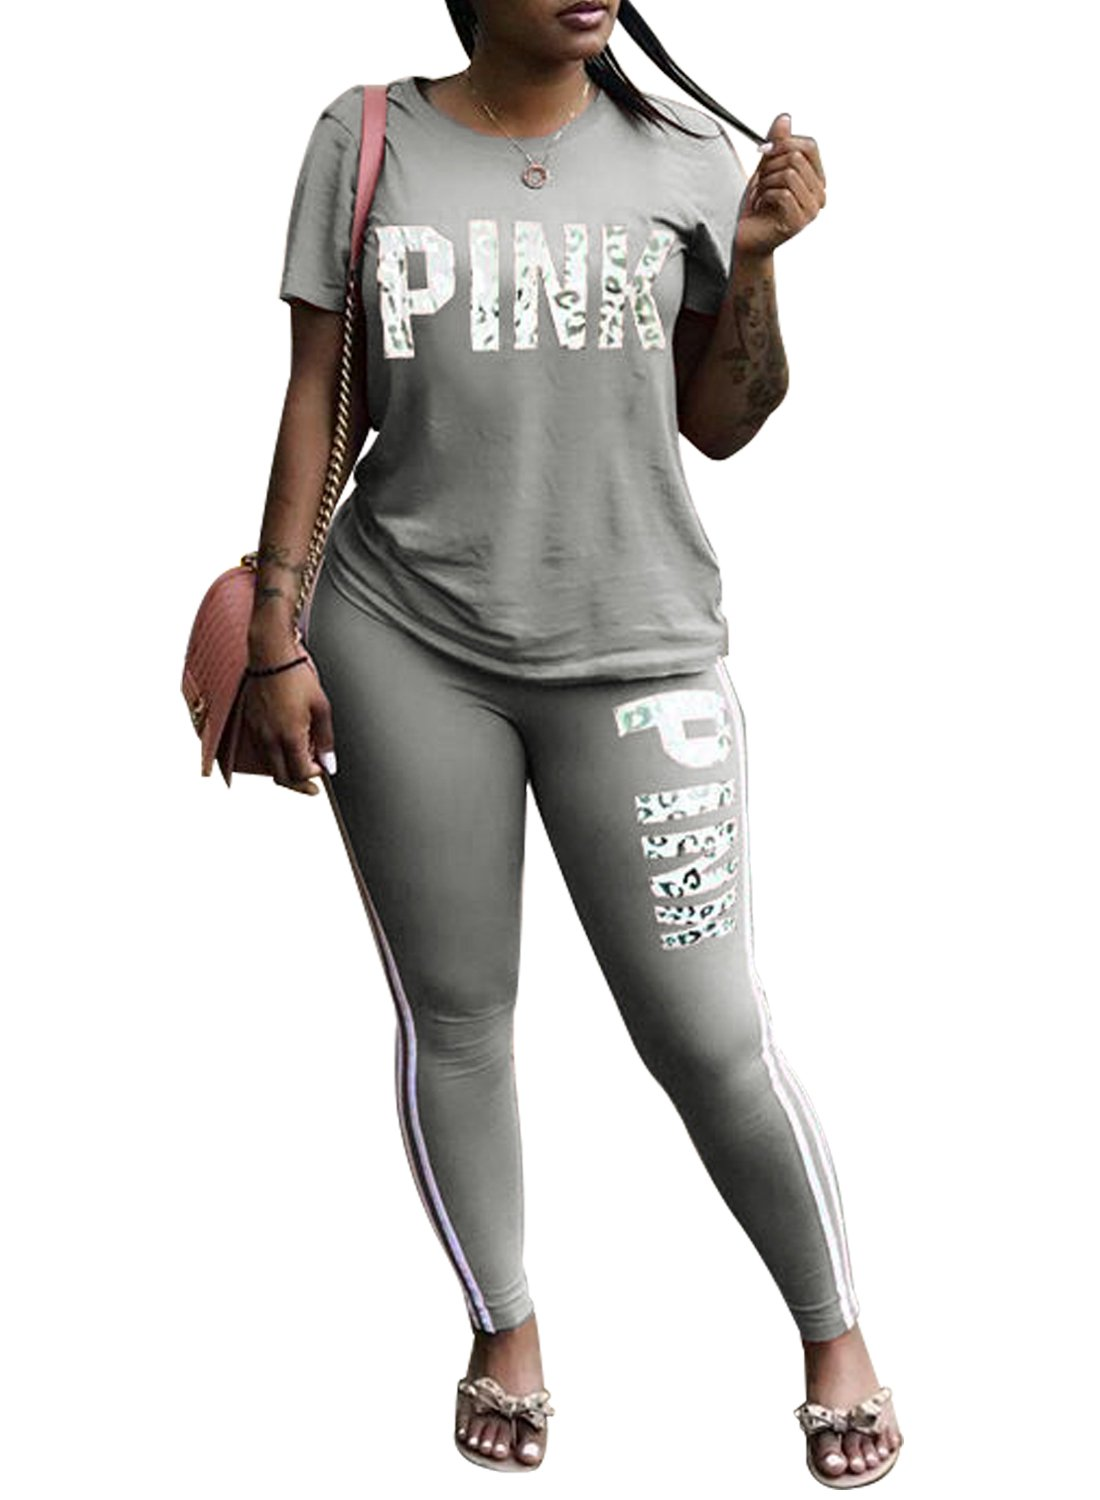 Just For Future Women Jumpsuit Pink Letter Print Short Sleeve Crop Top Long Pants Tracksuit 2 Piece Outfits (Grey, XL)